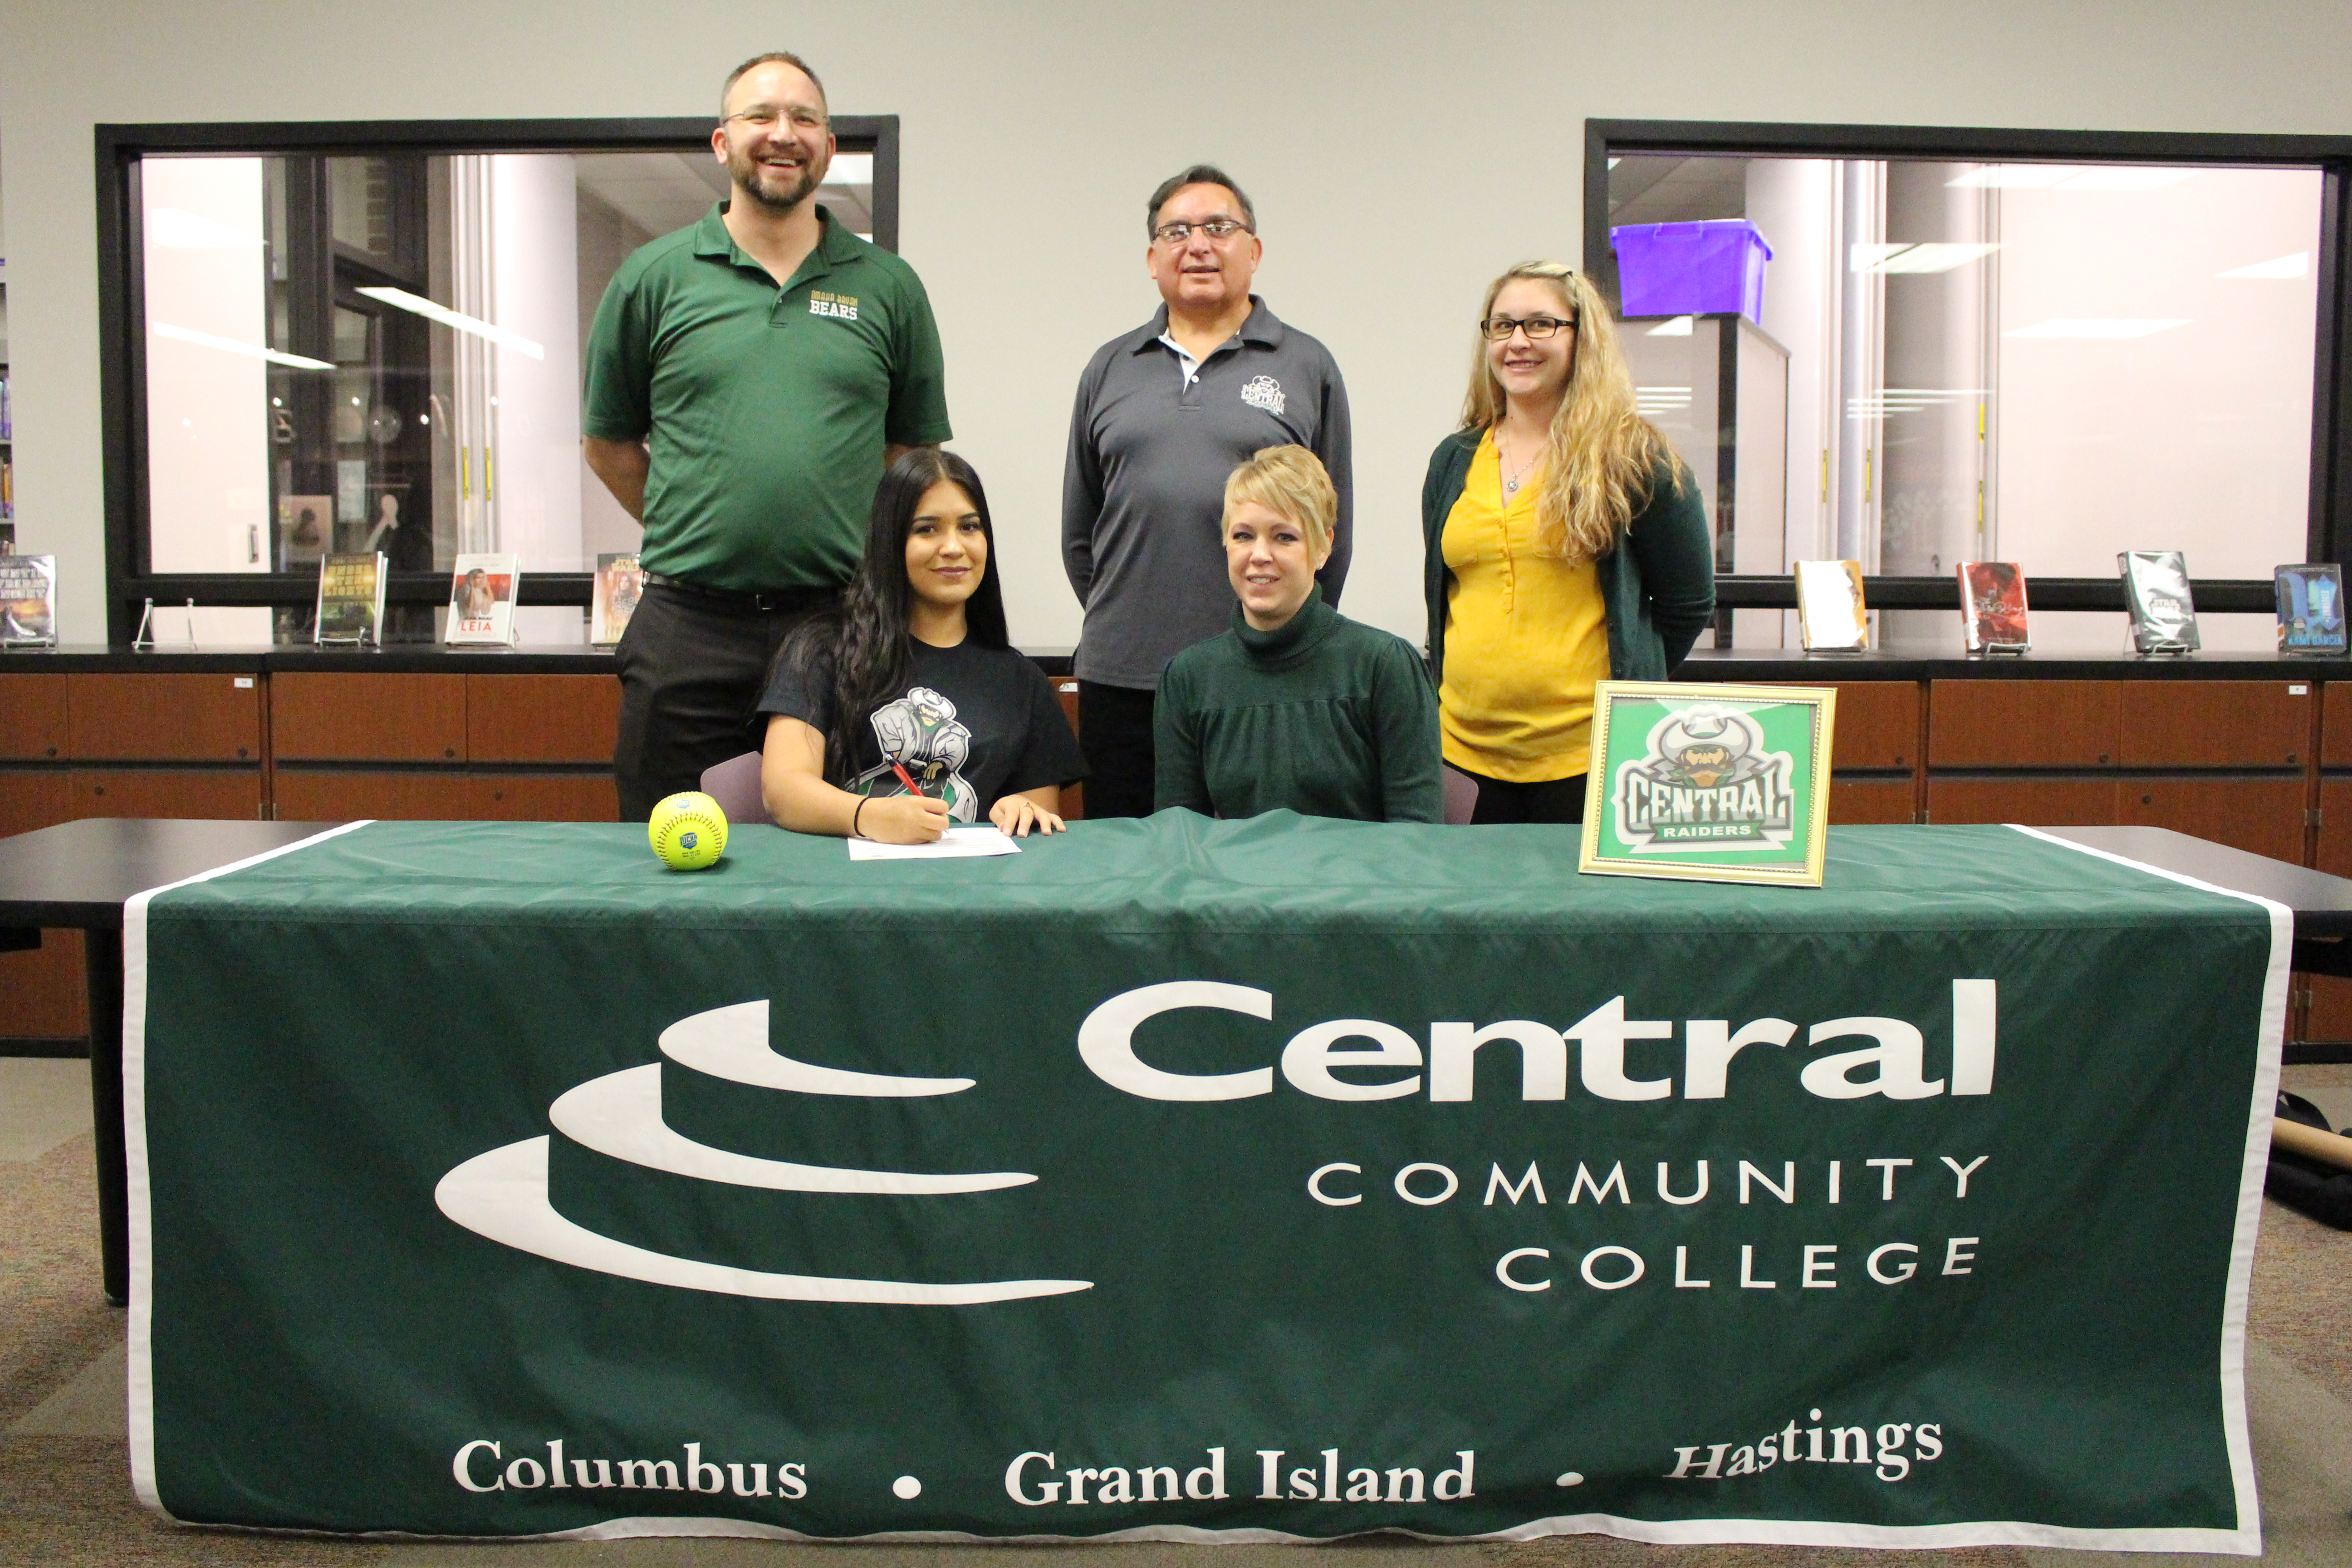 Bryan Softball Player Signs to Play at Central Community College